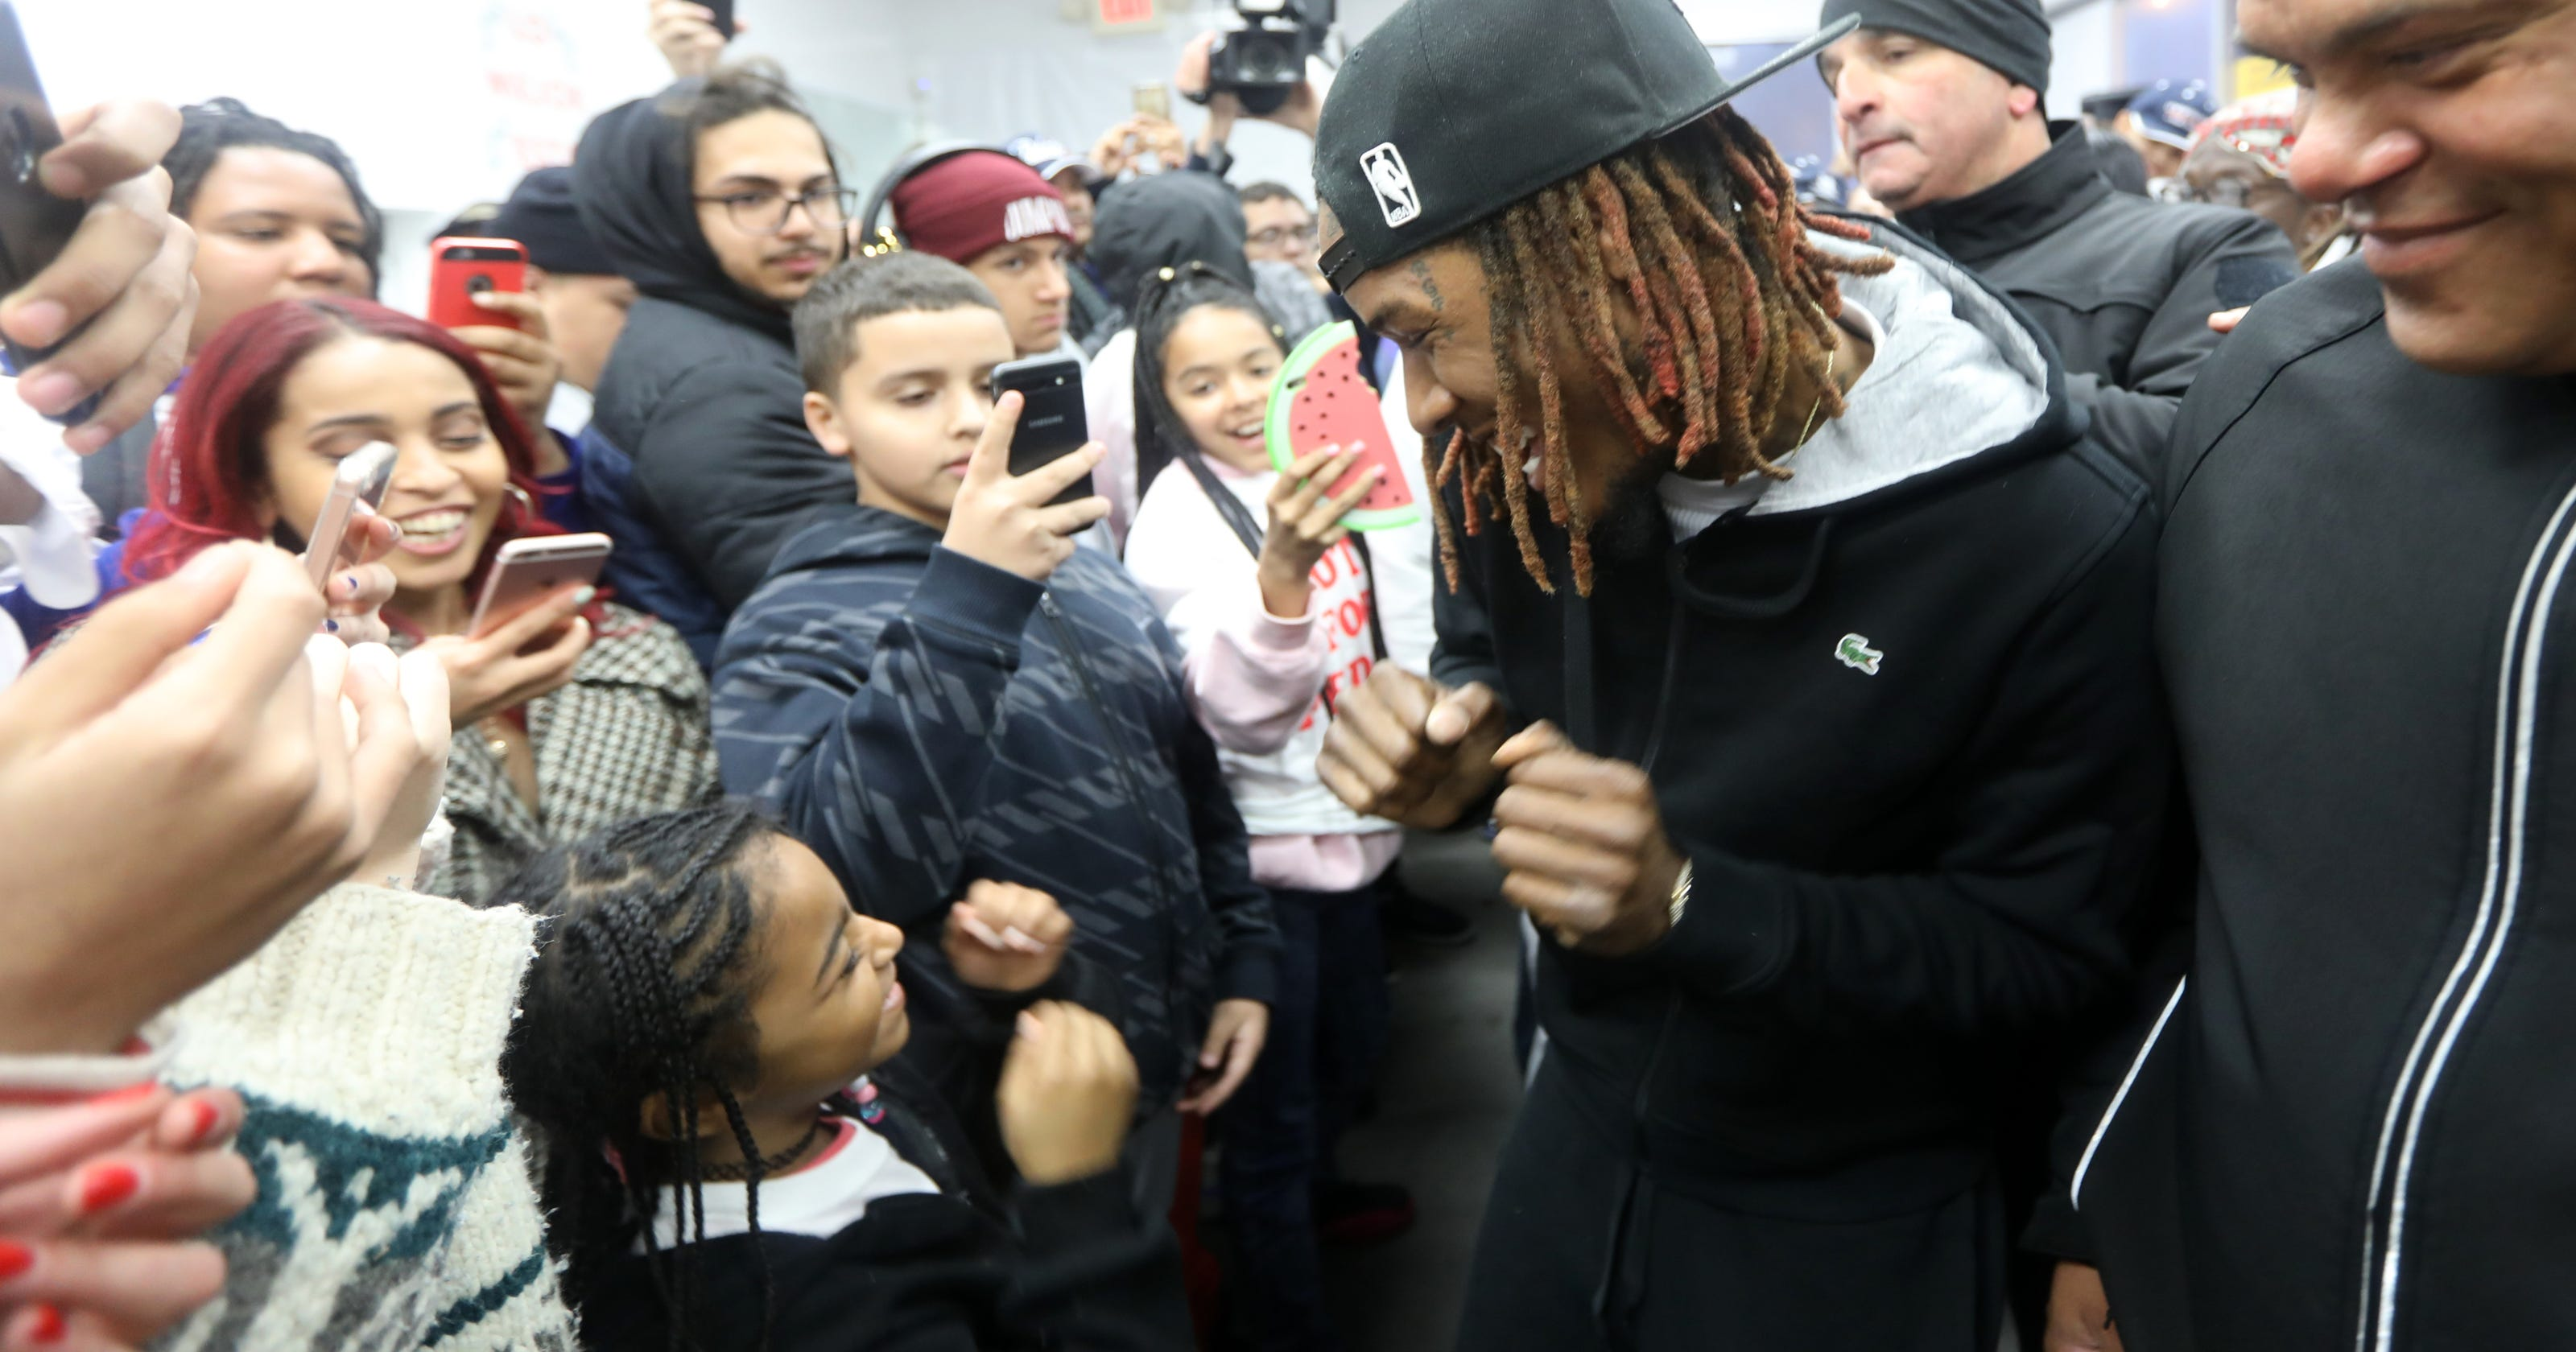 Fetty Wap and Paterson mayor candidate Michael Jackson trade barbs